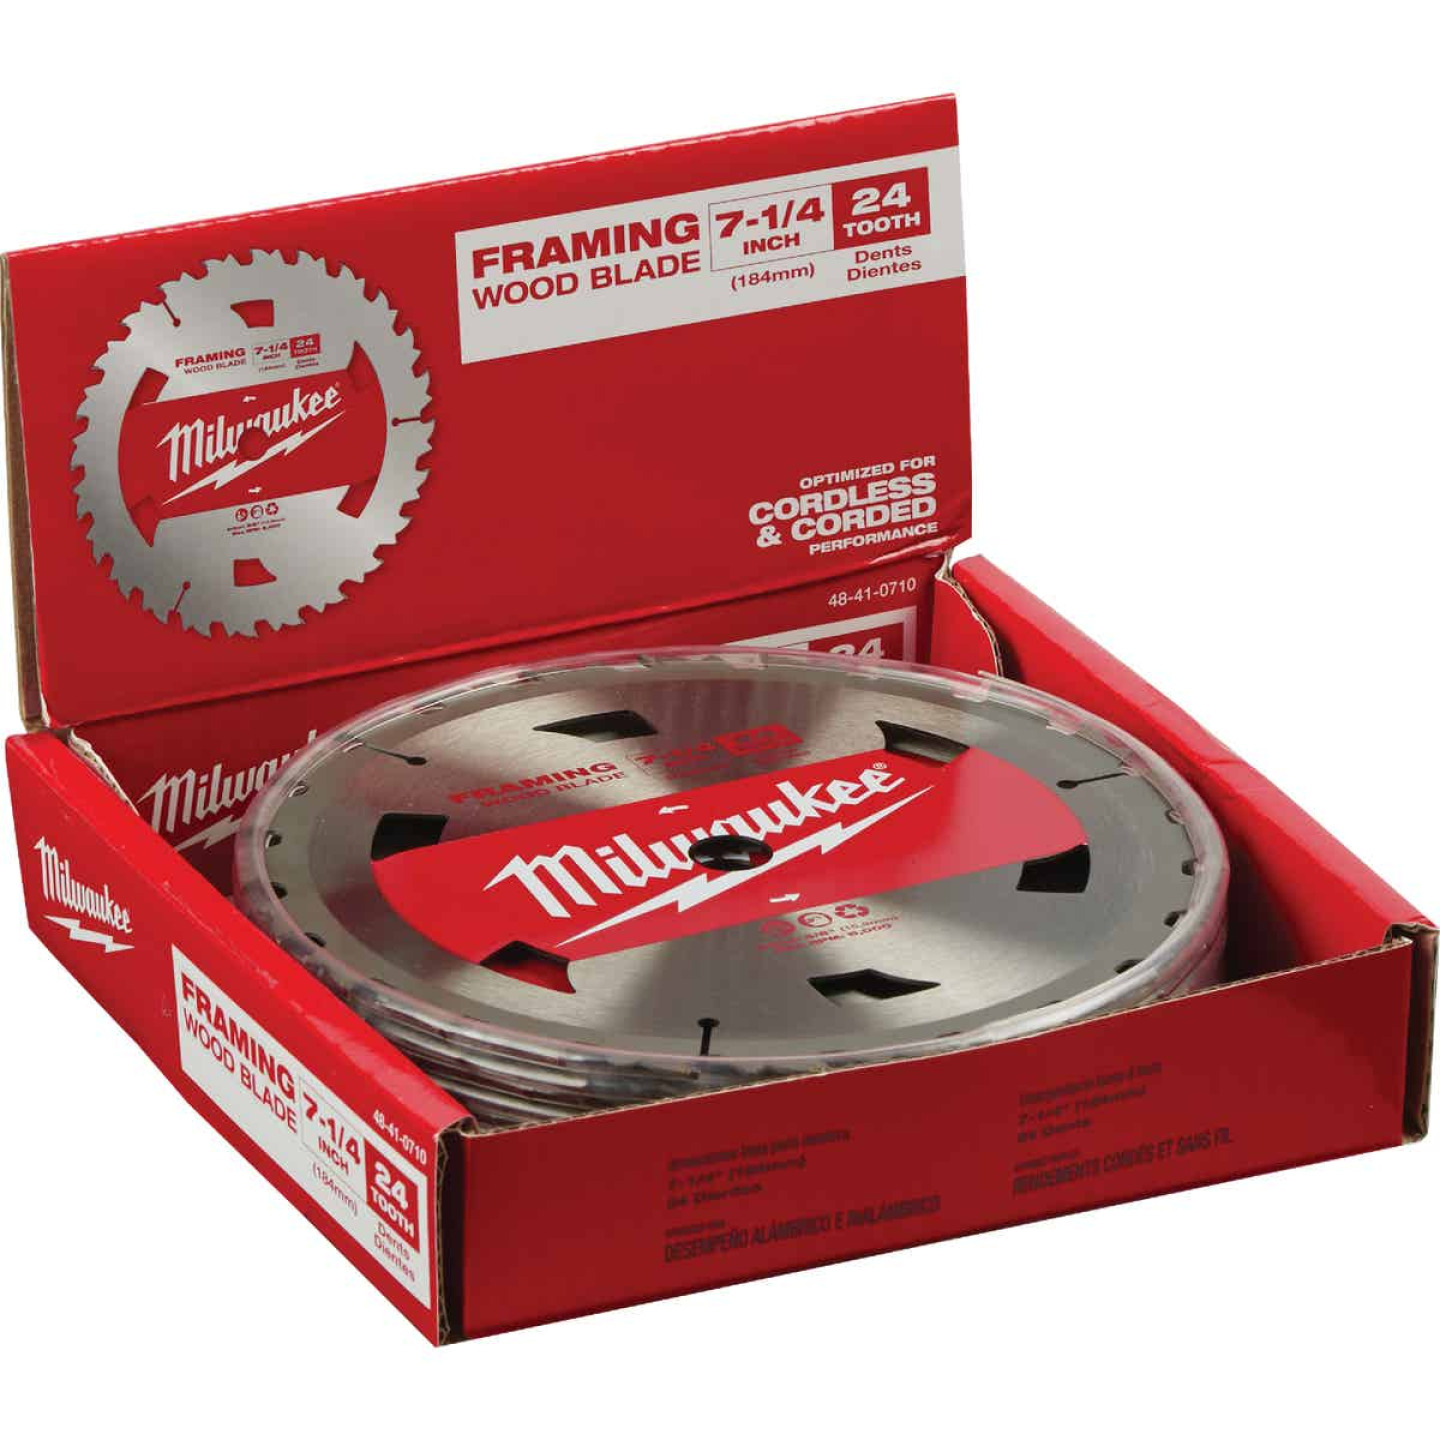 Milwaukee 7-1/4 In. 24-Tooth Standard Framing Circular Saw Blade, Bulk Image 2